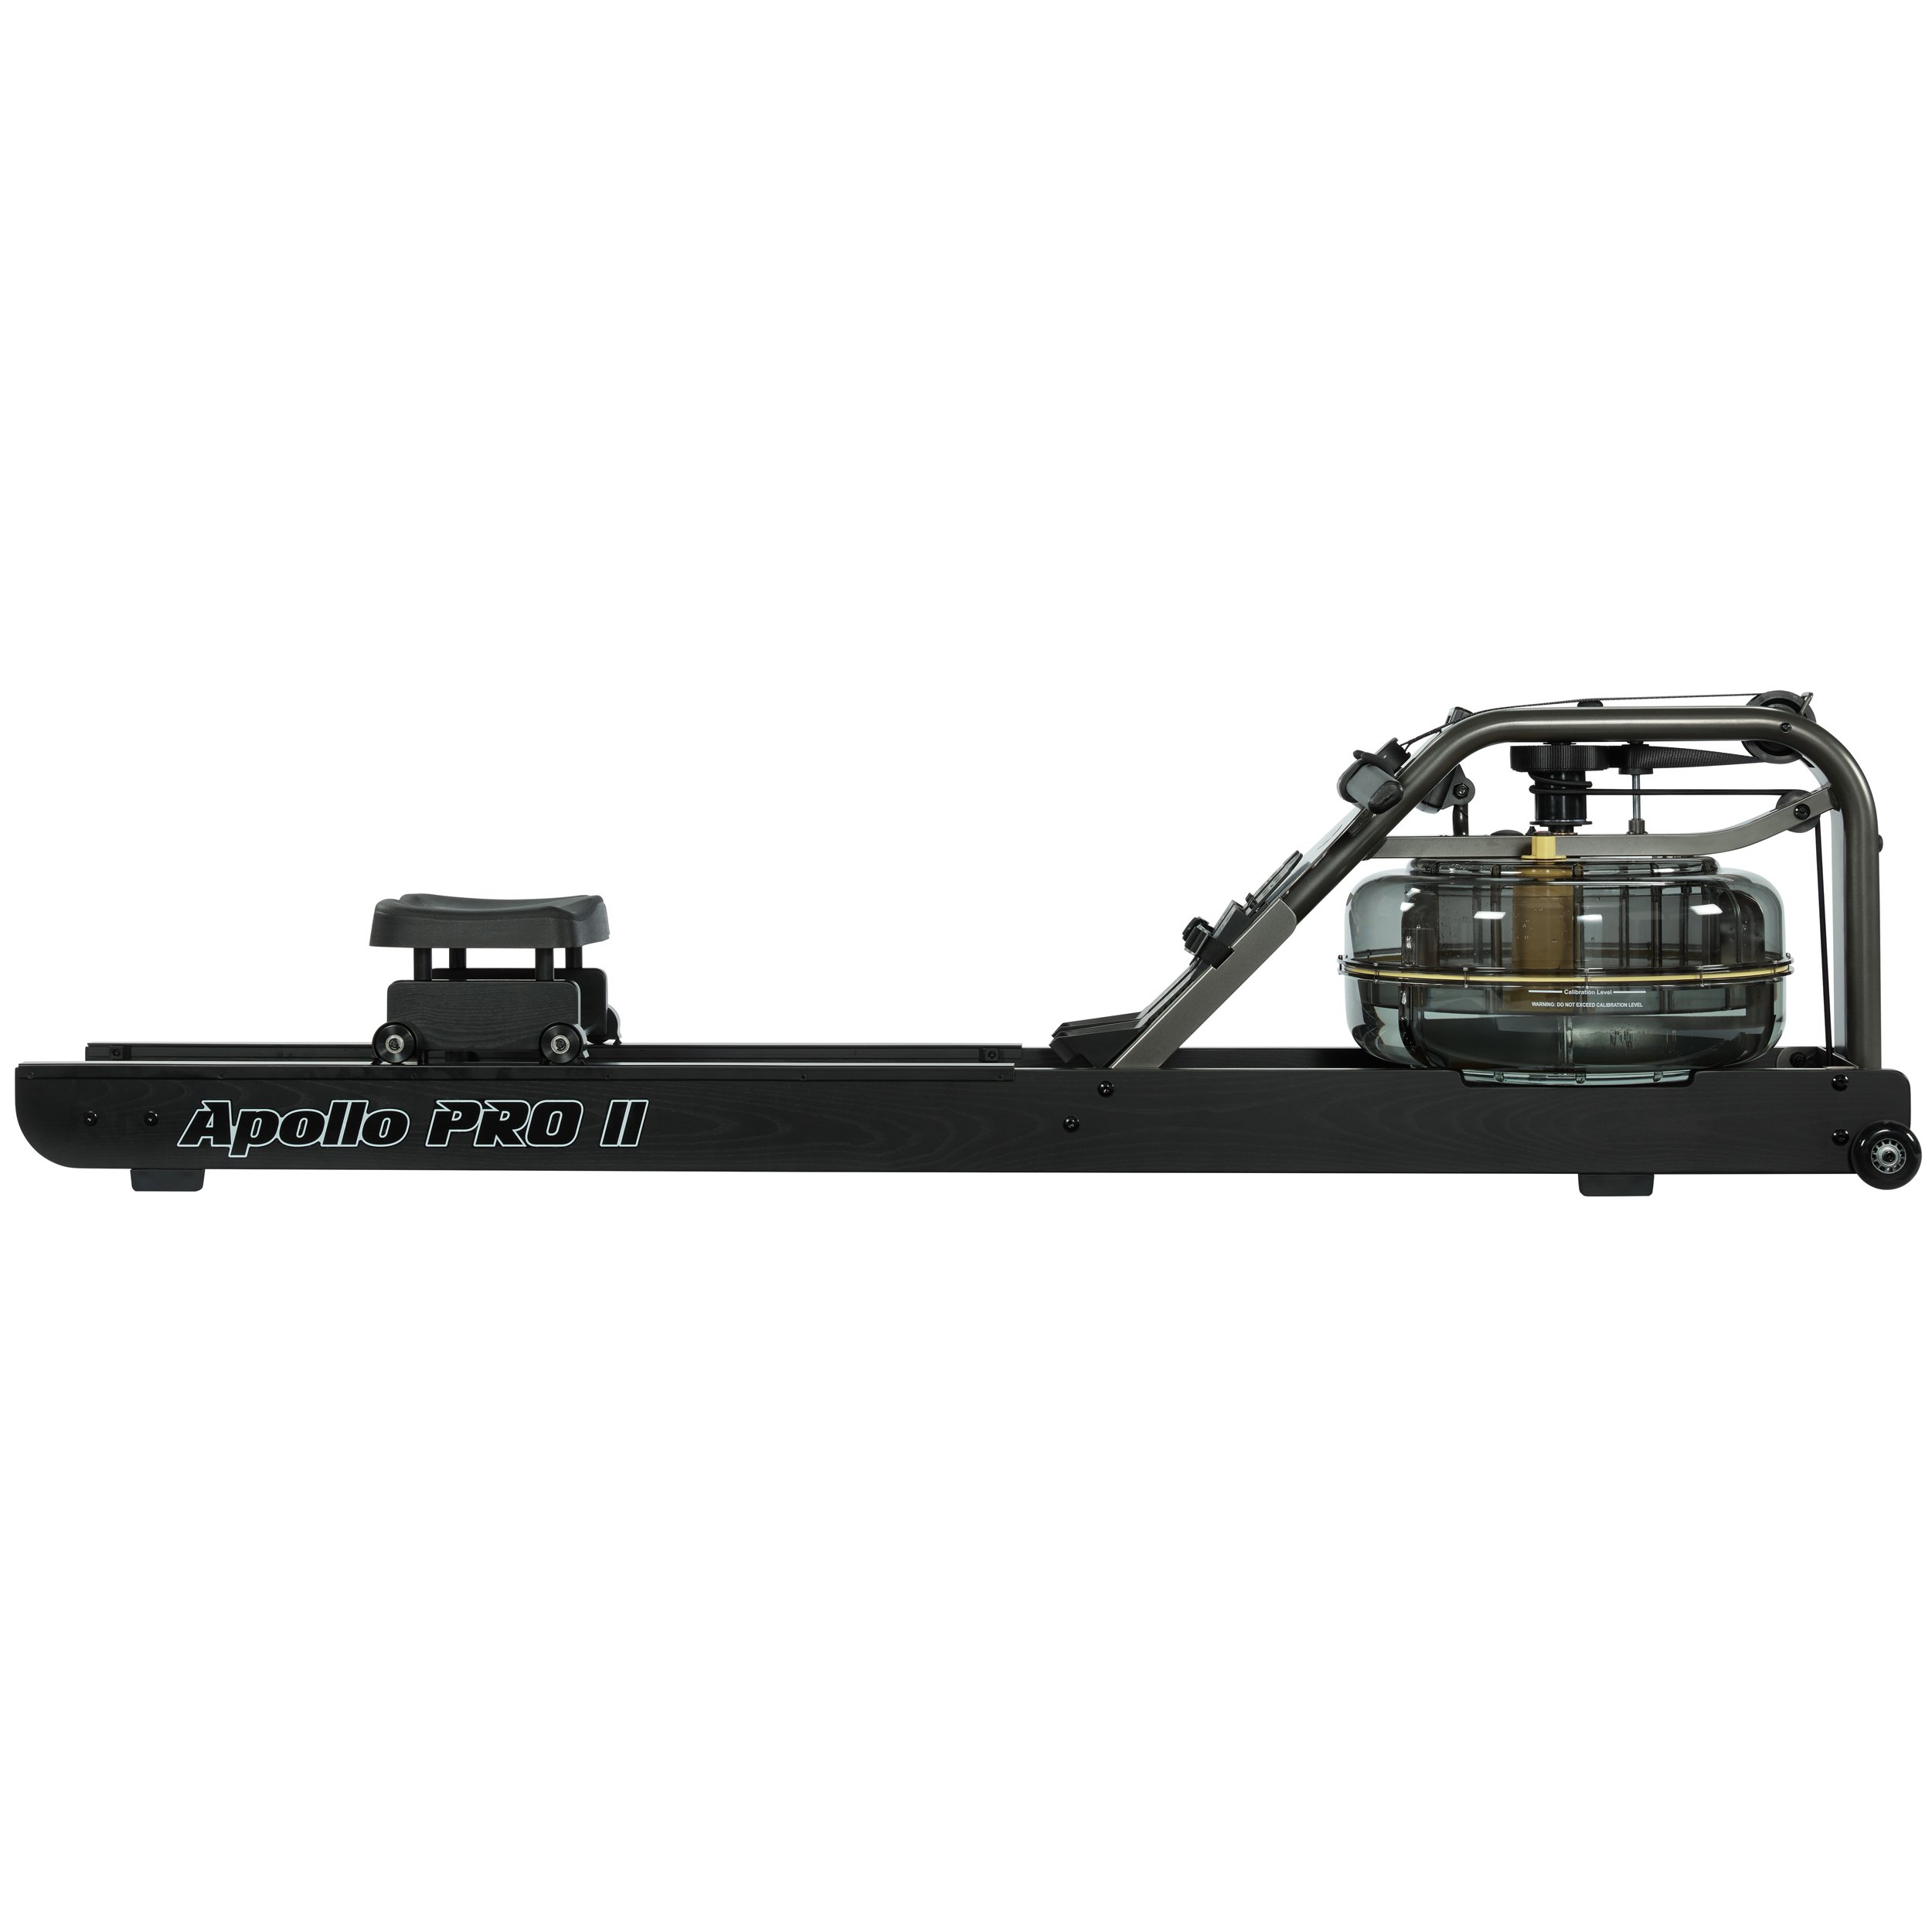 First Degree Fitness Indoor Water Rower with Adjustable Resistance - Apollo Pro II Black Reserve by First Degree (Image #4)